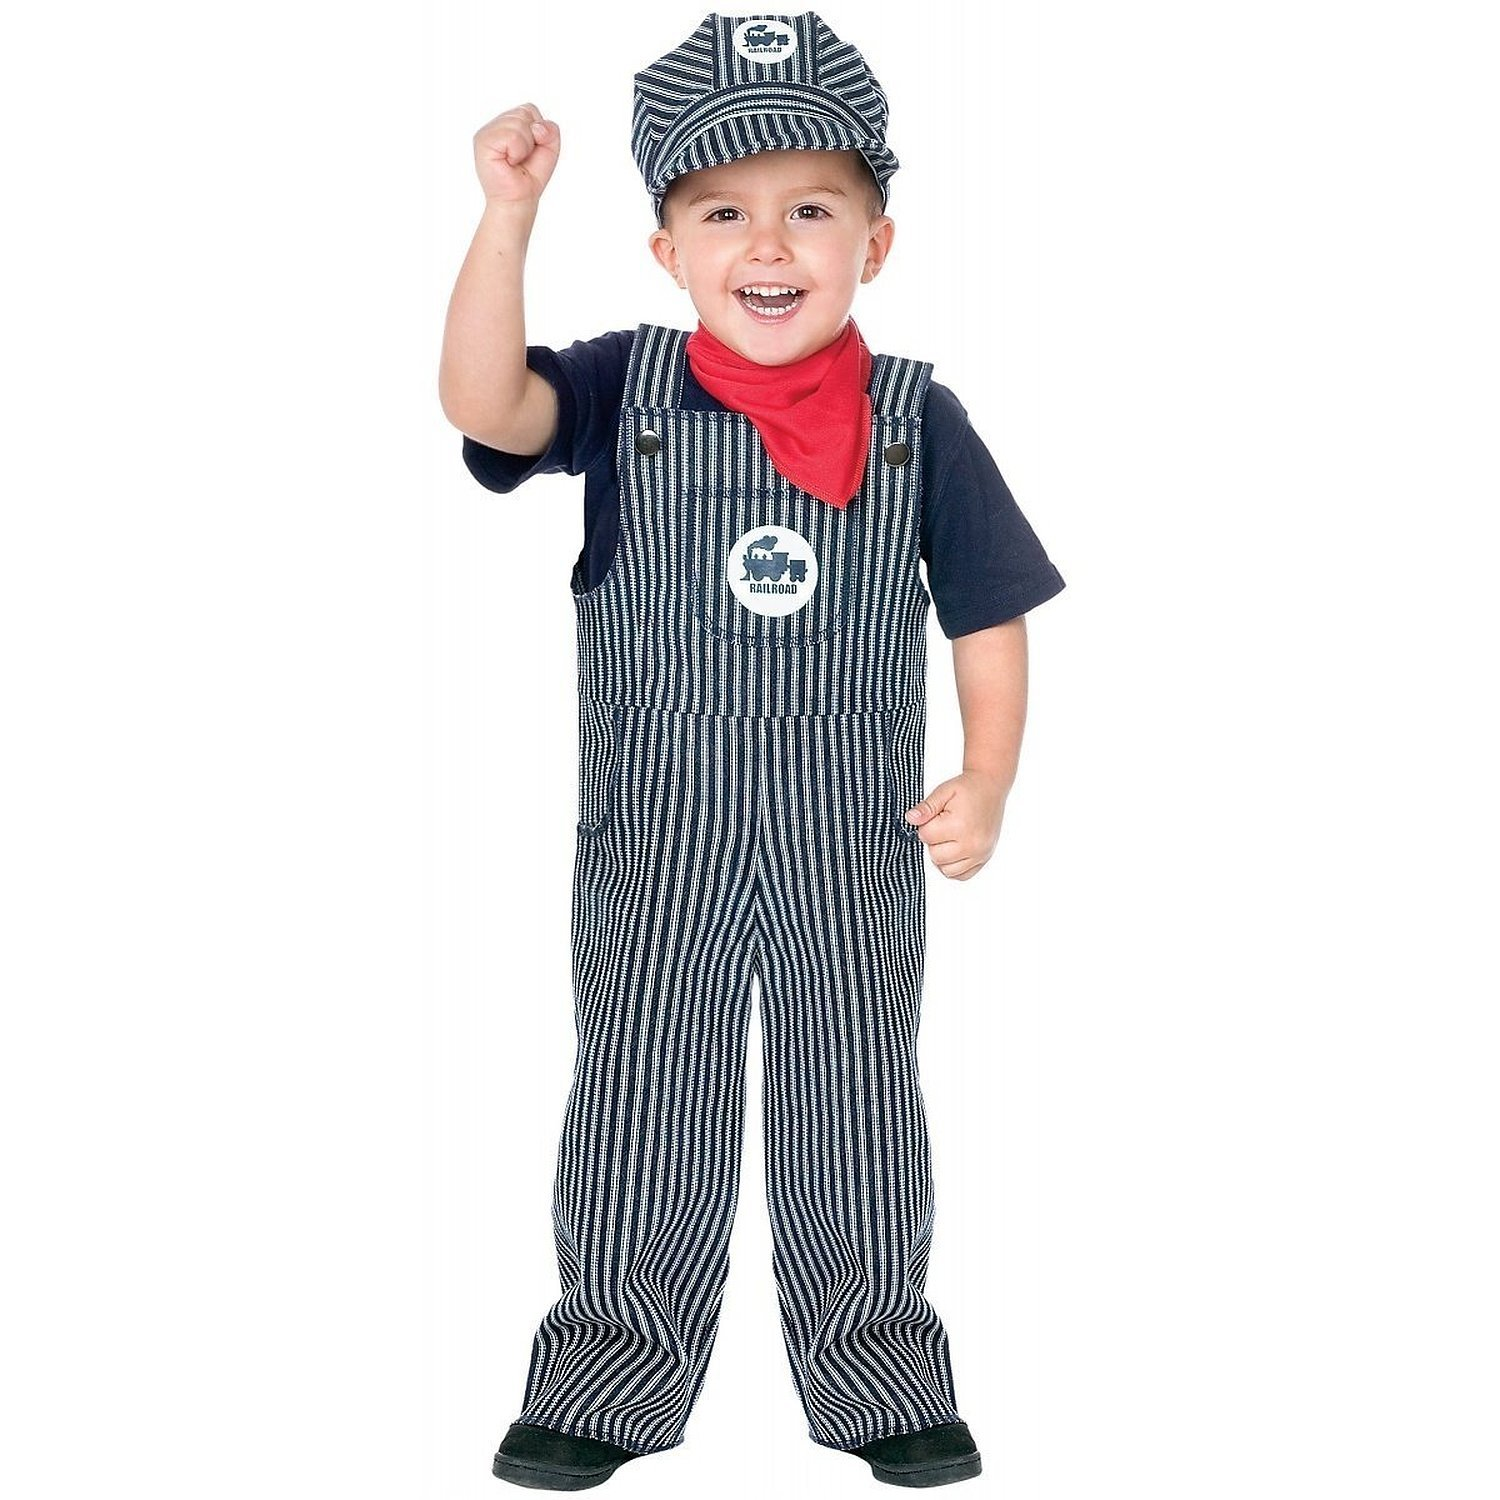 43a0ce9e4b3 Get Quotations · Fun World Child Costume Train Engineer Child Costume  (24m-2T)